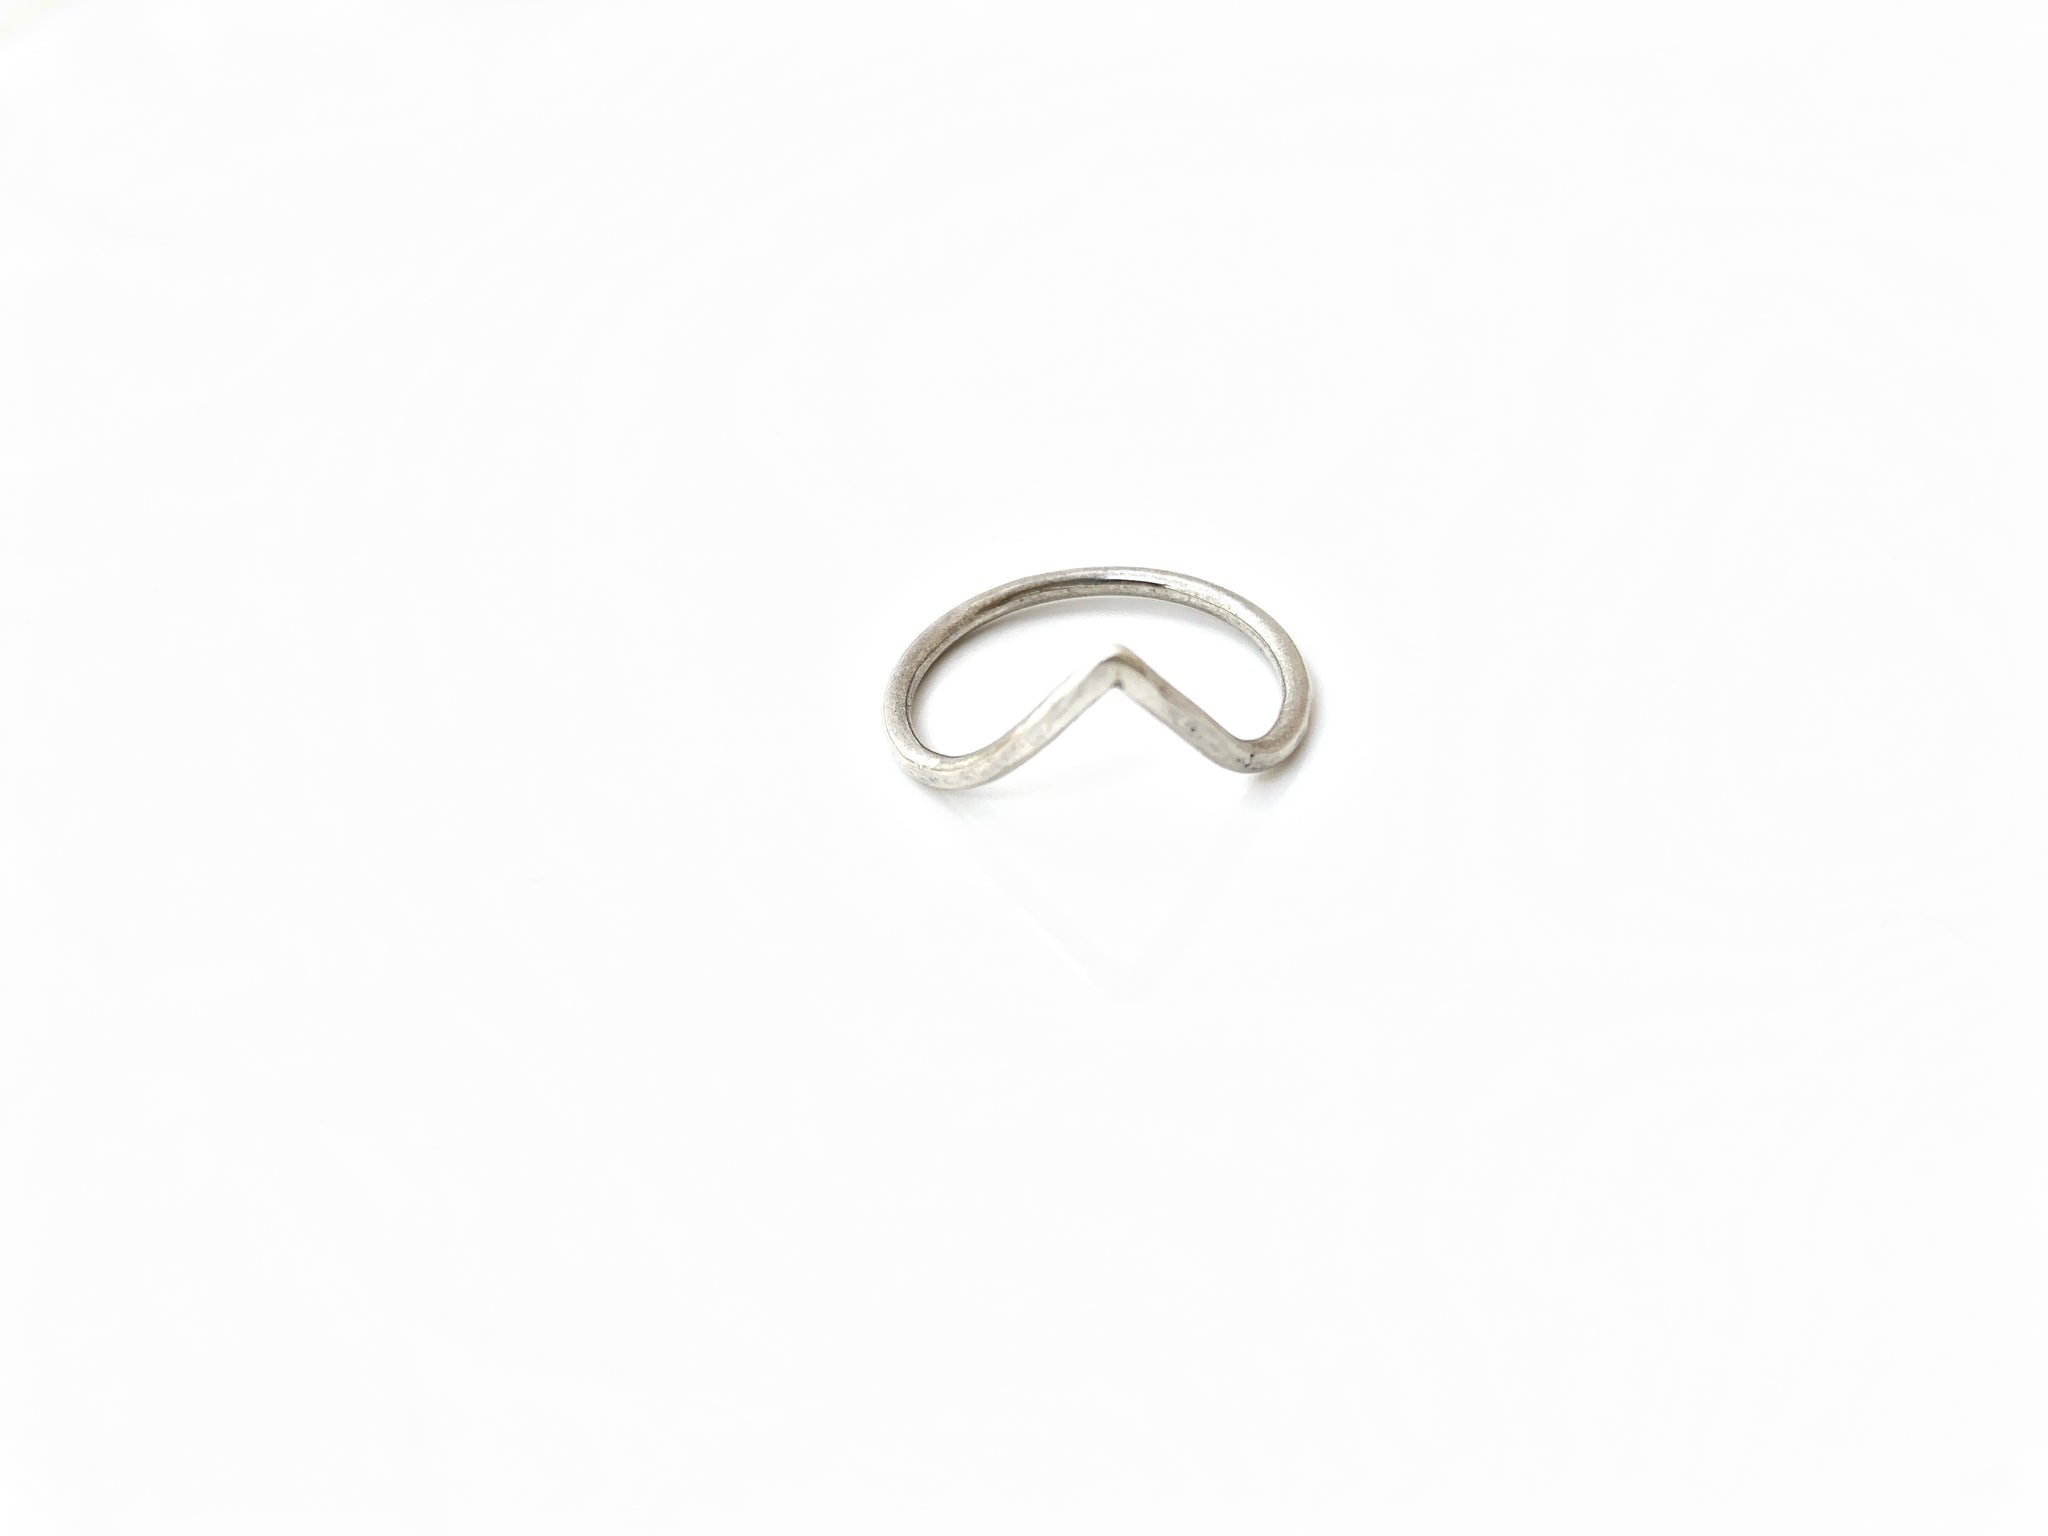 Telkwa Ring in Silver